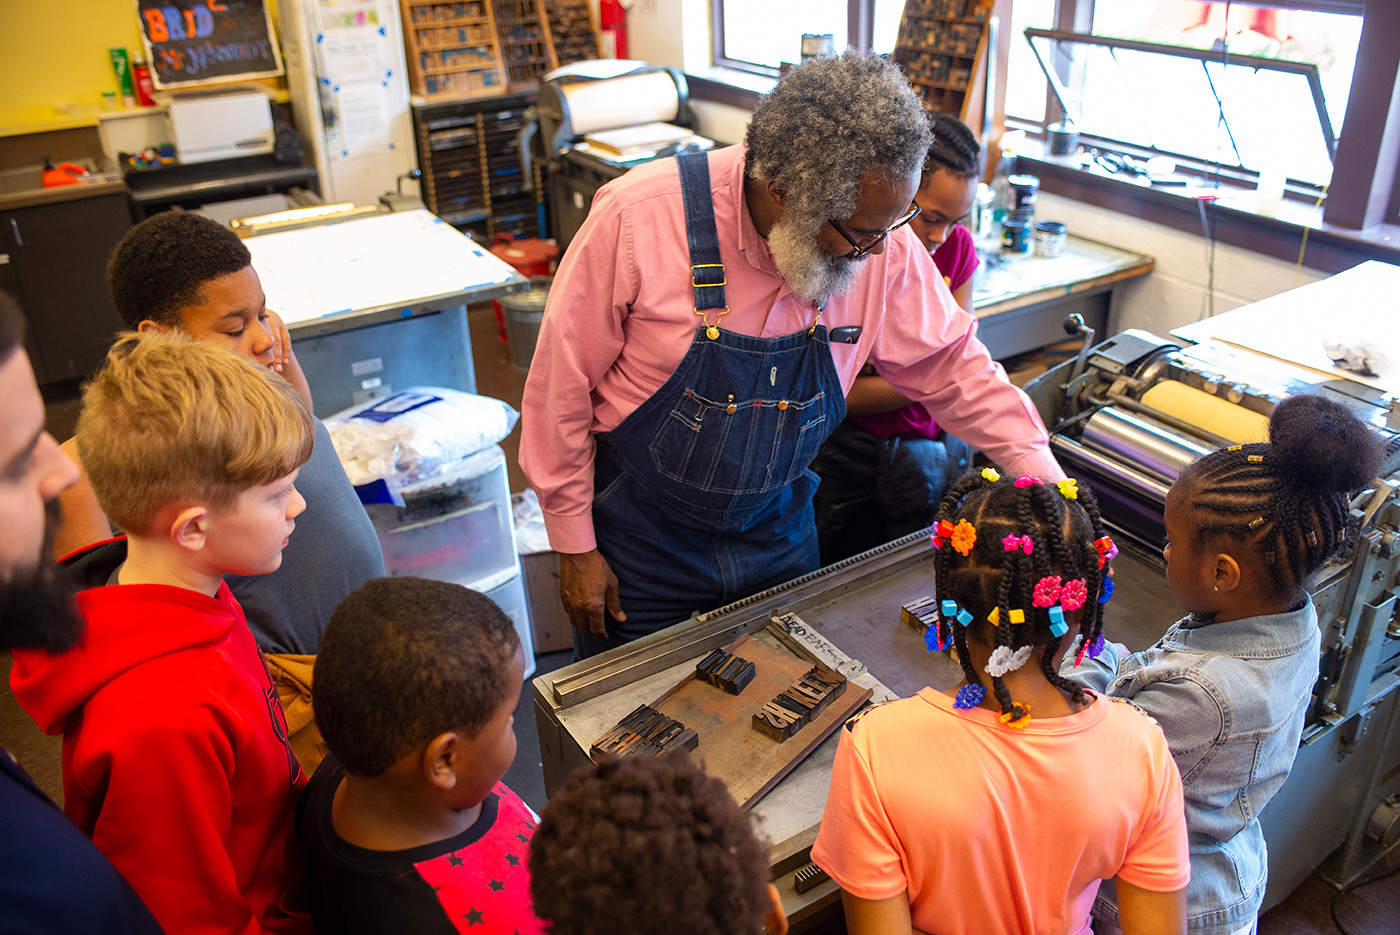 Detroit-based printmaker Amos Paul Kennedy Jr. made prints with The Boys and Girls Club of Central Virginia at the Virginia Art of the Book Center at the Jefferson School in Charlottesville on Friday, 3/15/19 as part of his Frank Riccio artist residency.